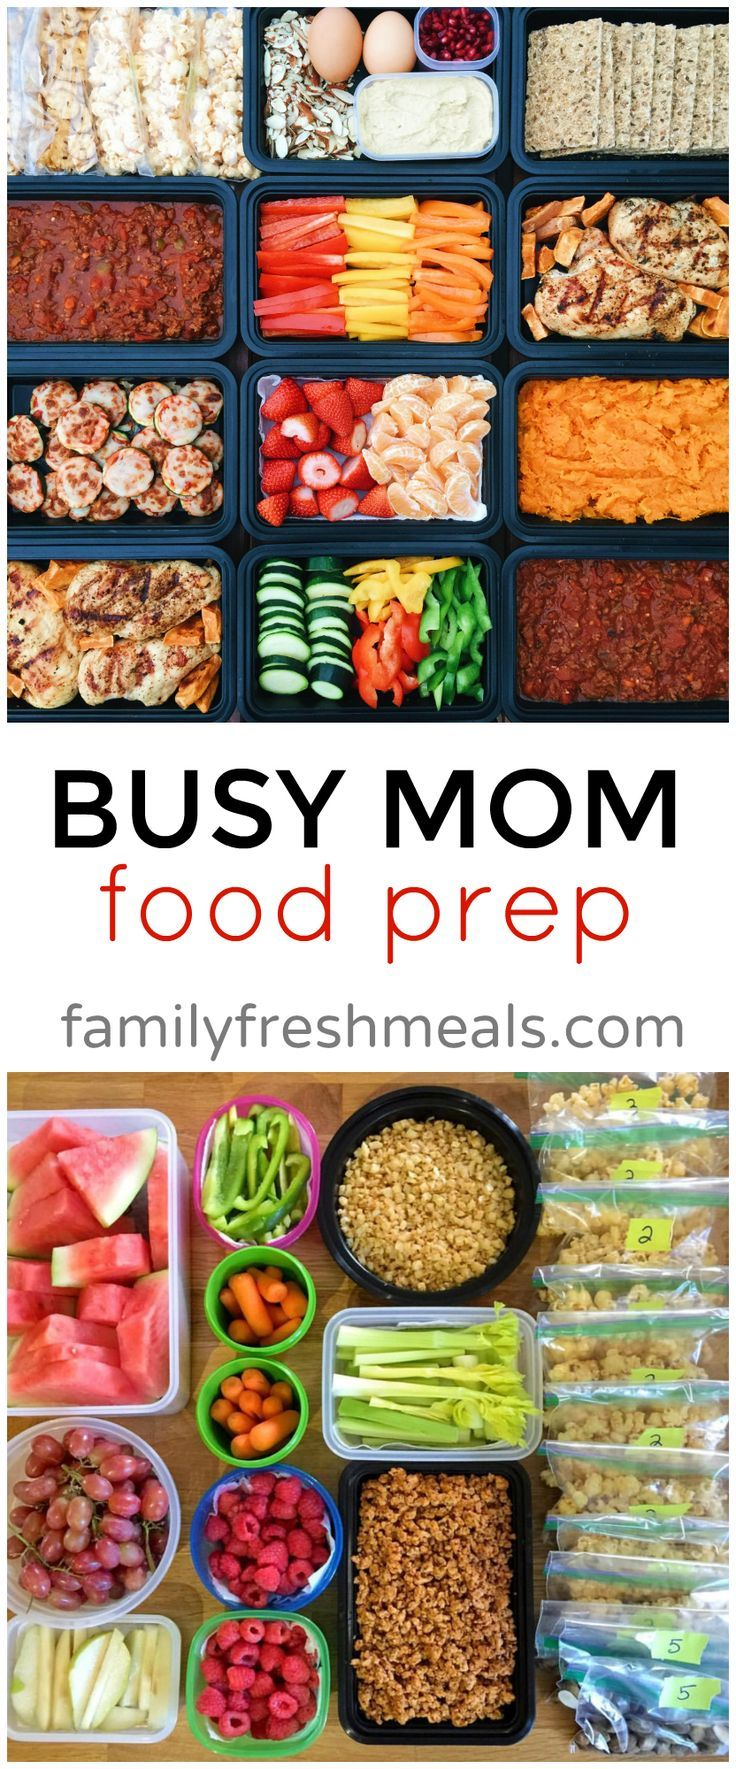 Busy Mom Food Prep Family fresh meals, Lunch meal prep